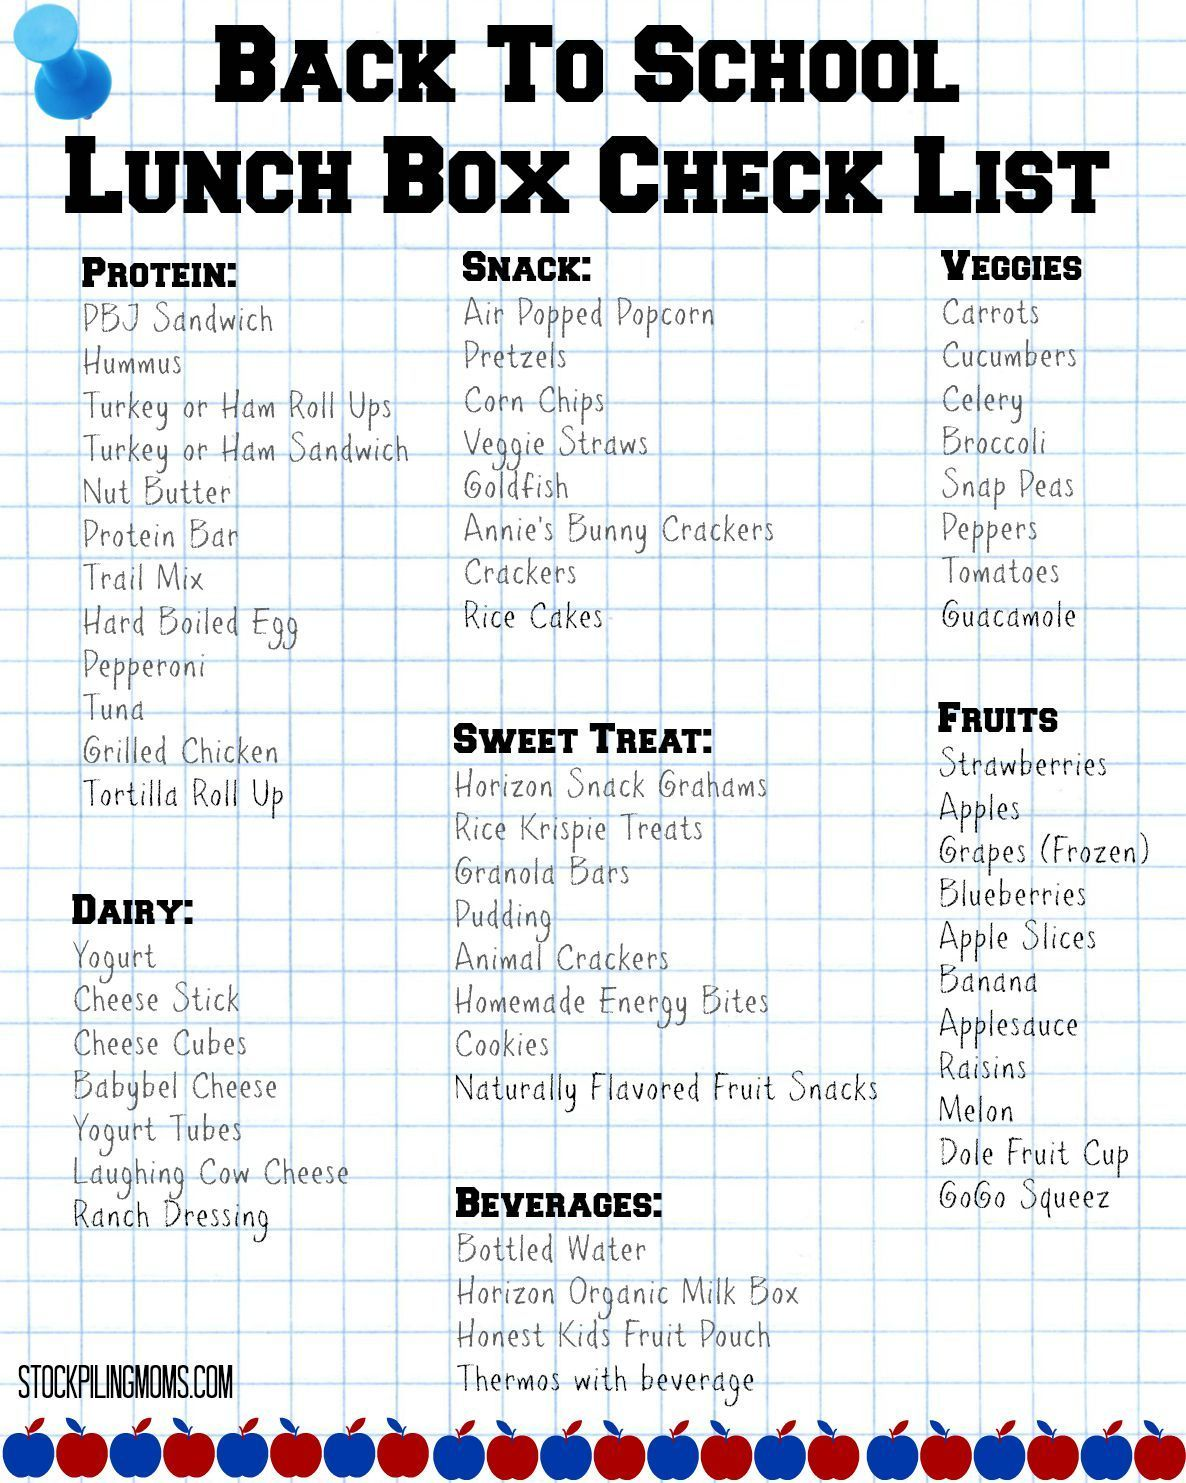 PB&J Sandwich Stressing out about packing school lunches? We have a Back To School Lunch Box Check List printable for you!Stressing out about packing school lunches? We have a Back To School Lunch Box Check List printable for you!